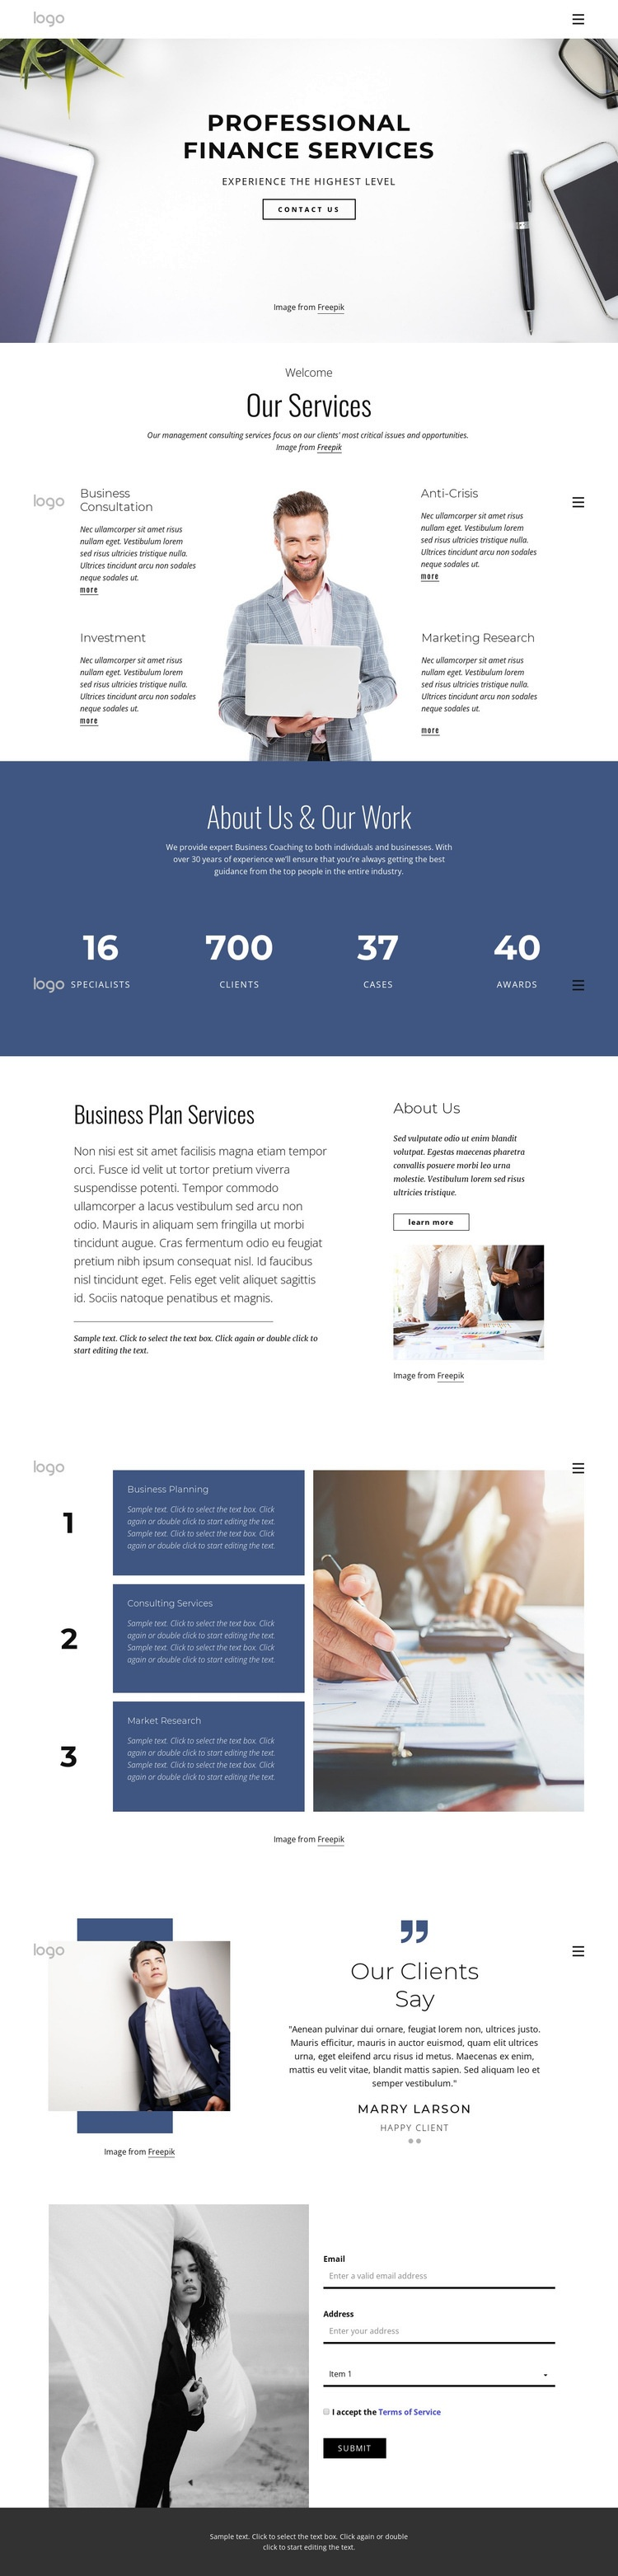 Professional finance services Html Code Example